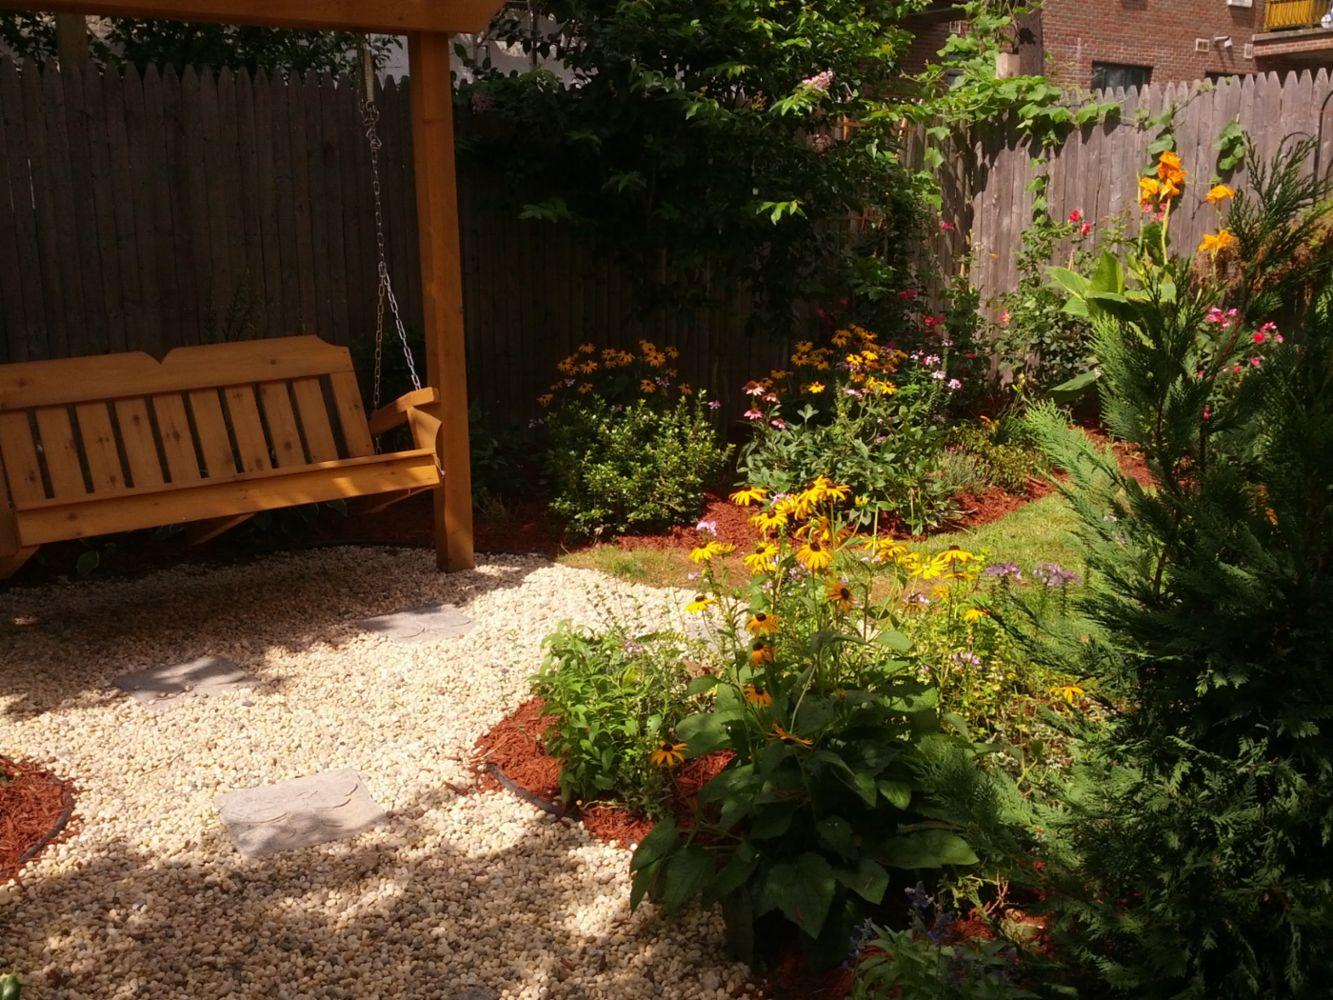 Landscaping design and maintenance in brooklyn ny great for Great landscape design